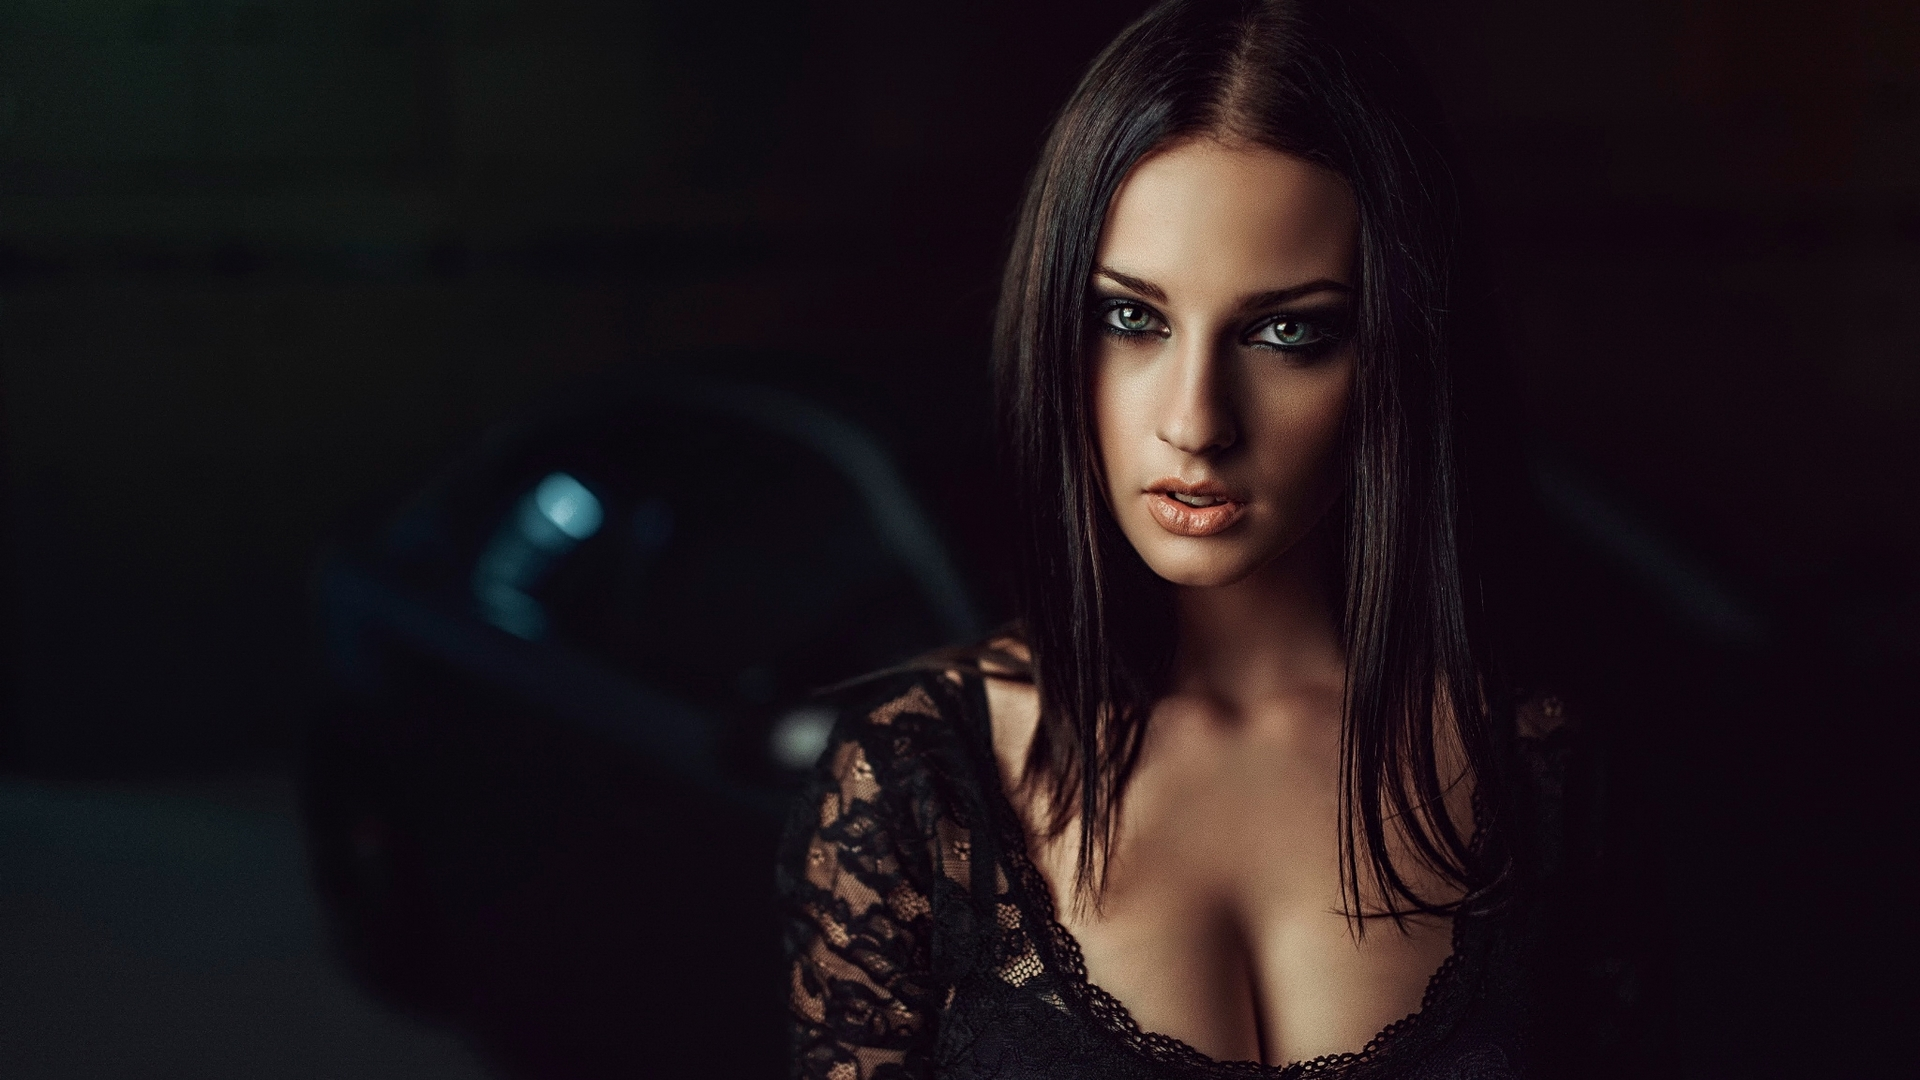 Girl in black & Car